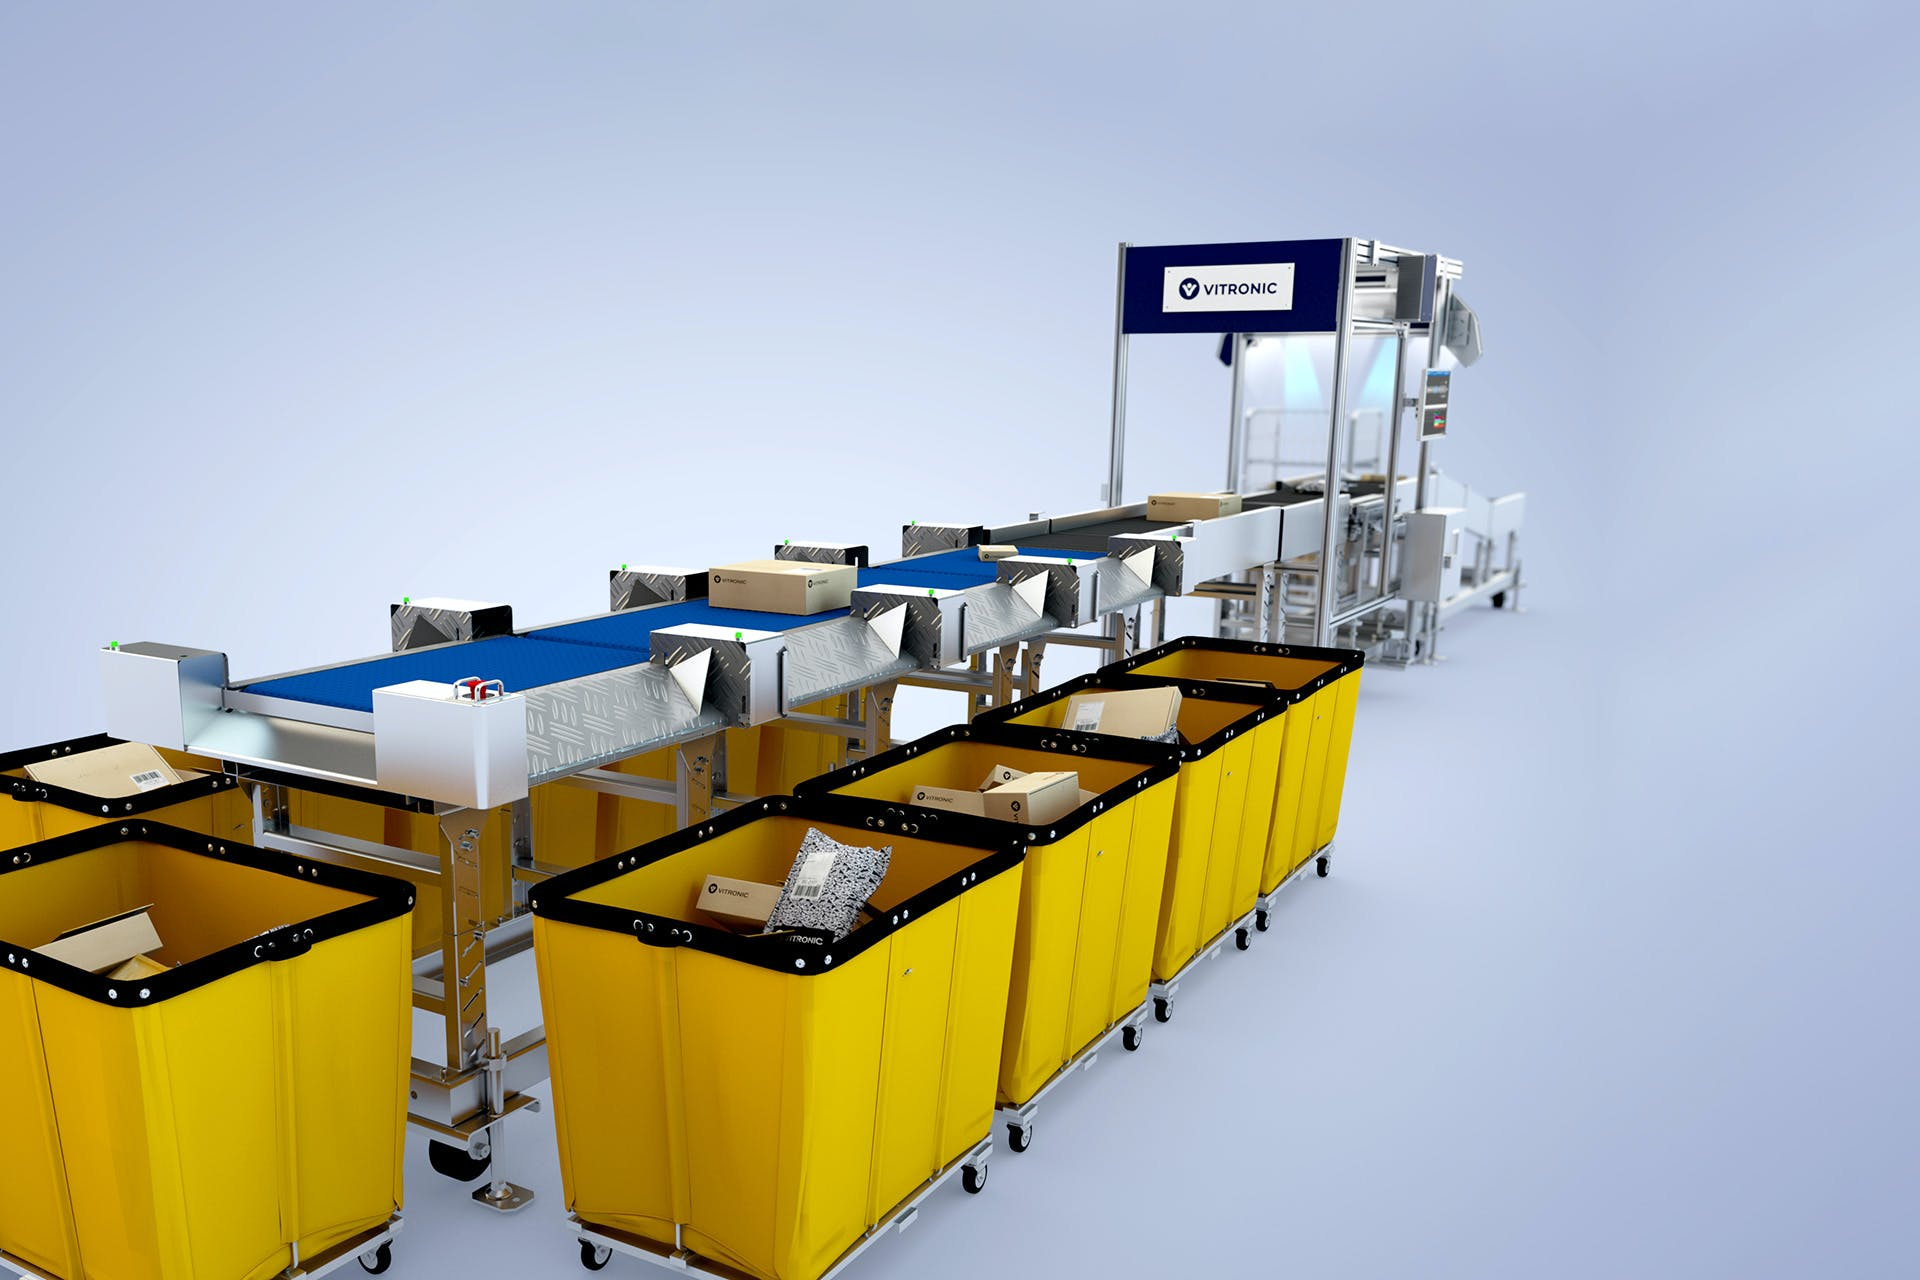 Packages run over a conveyor belt and are sorted into yellow bins.